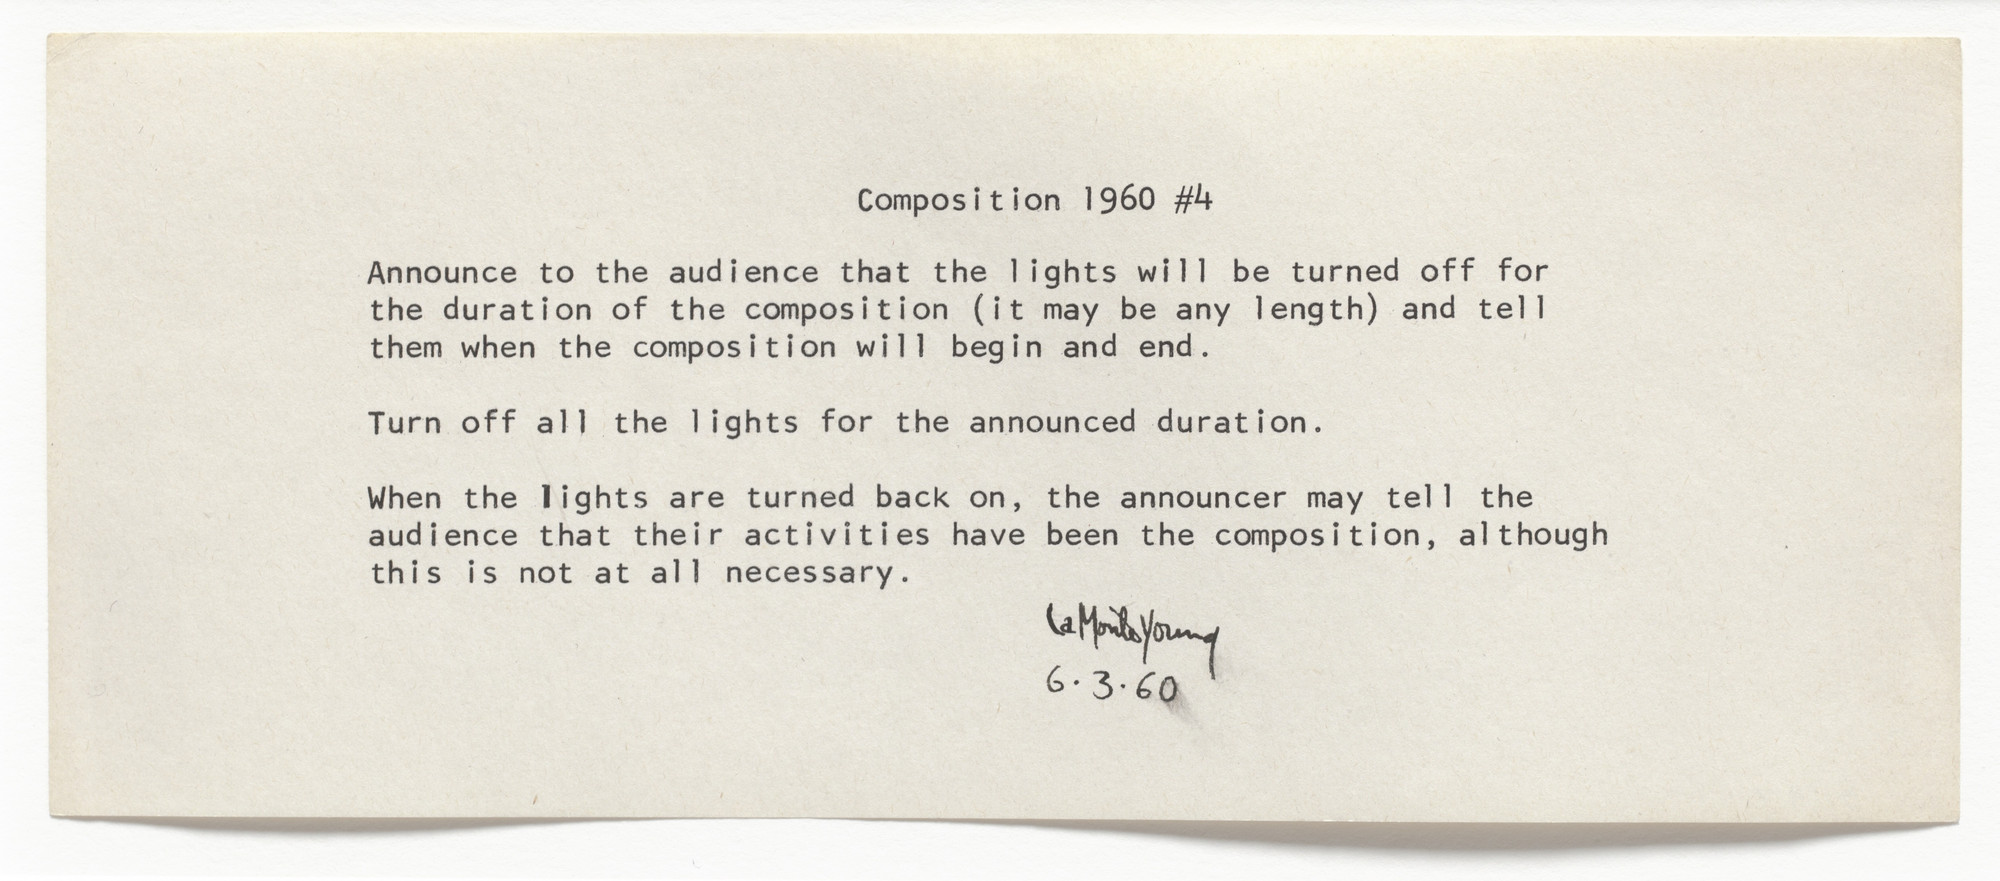 La Monte Young. Composition 1960 #4. 1960